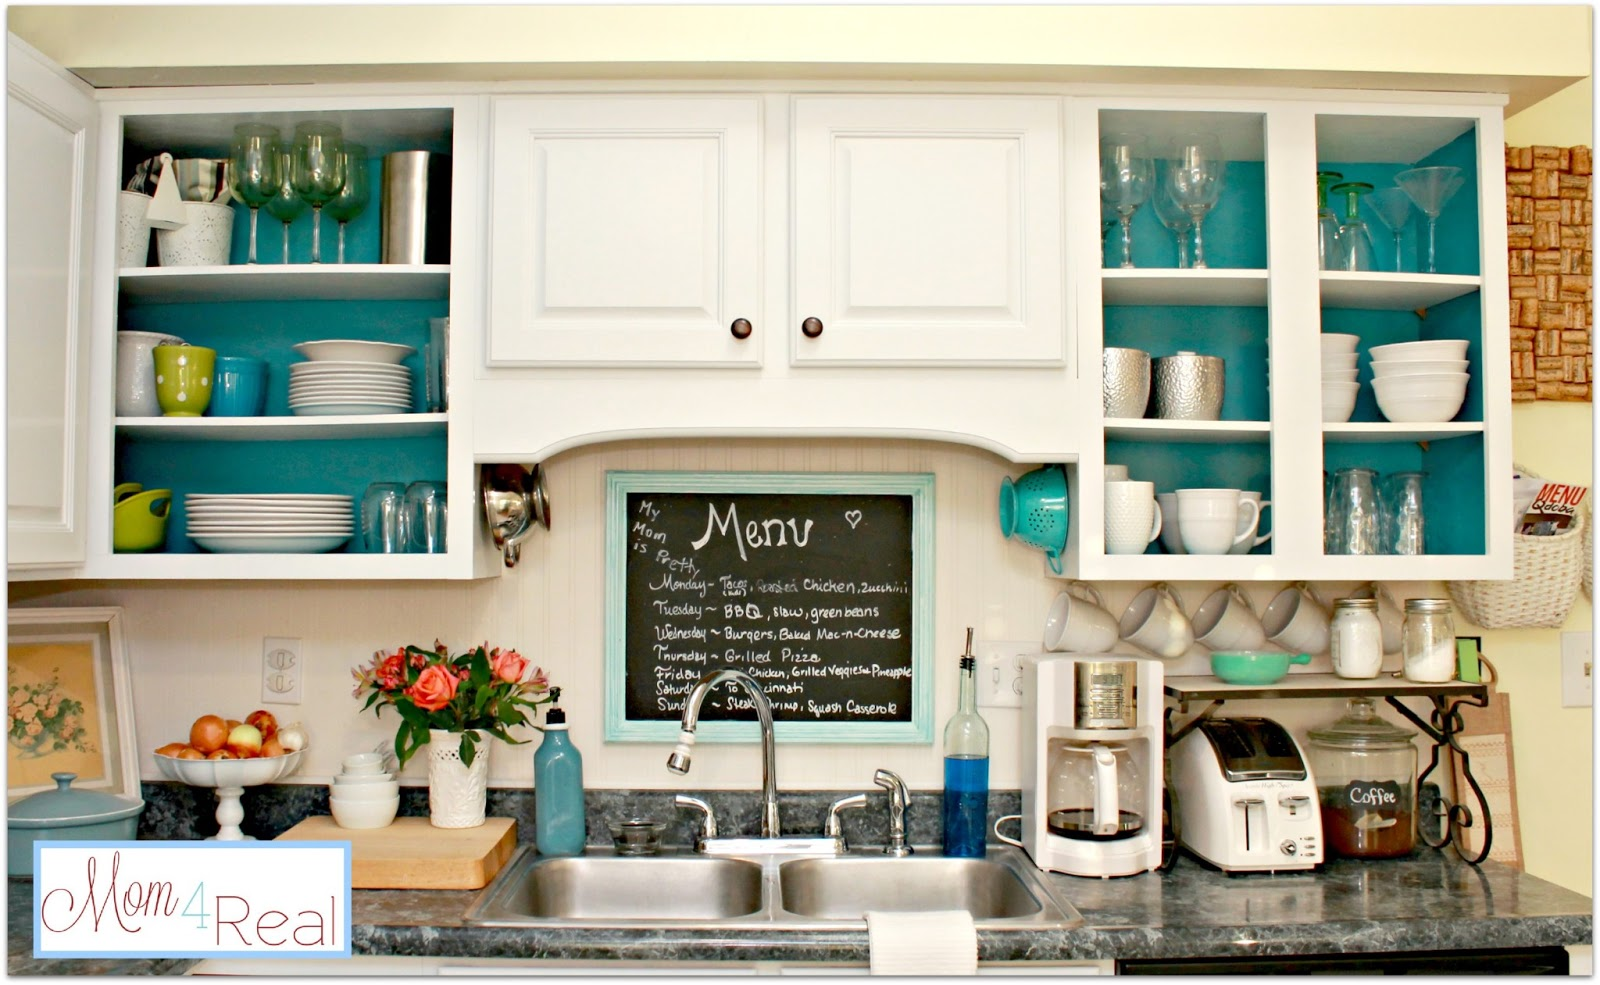 Open Cabinets With White, Aqua, Lime Green, & Silver Accents - Mom on pantry cabinets, open pantry, open kitchen solutions, open luxury kitchens, open air kitchen los angeles, open kitchen sinks, open kitchen islands, open kitchen looks, open corner kitchen, open kitchen dividers, open cupboards, open kitchen flooring, open kitchen drawers, modern cabinets, open kitchen interiors, open kitchen shelving, open kitchen countertops, open kitchen design, open kitchen shelves pinterest, open dream kitchen,